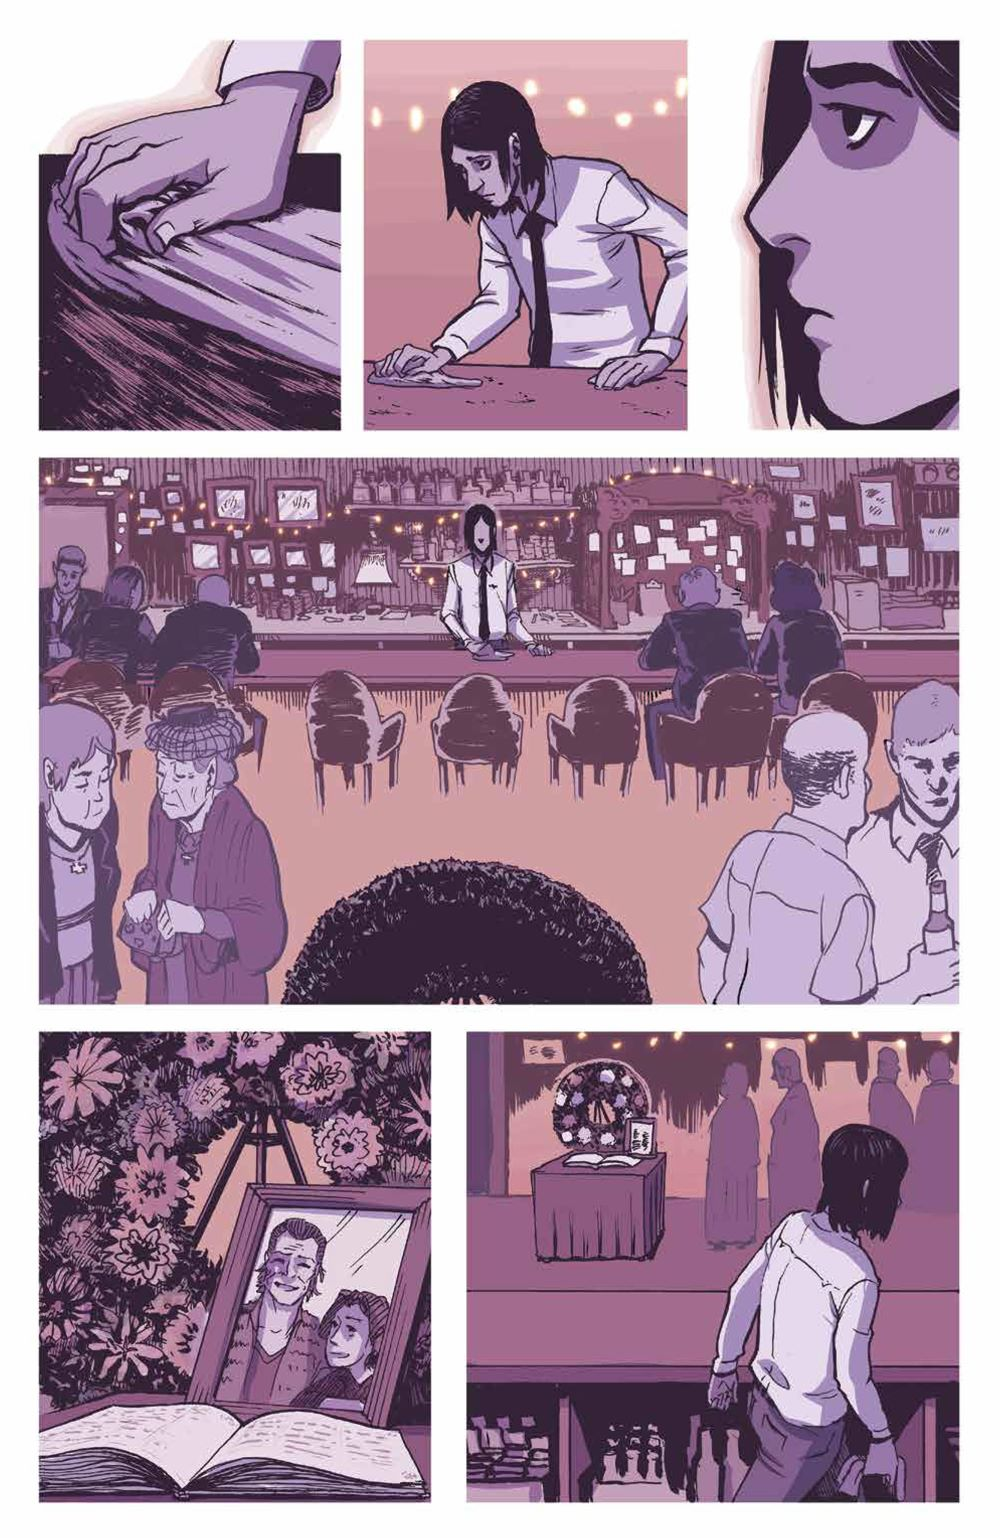 DownRiverPeople_SC_PRESS_14 ComicList Previews: THE DOWN RIVER PEOPLE GN